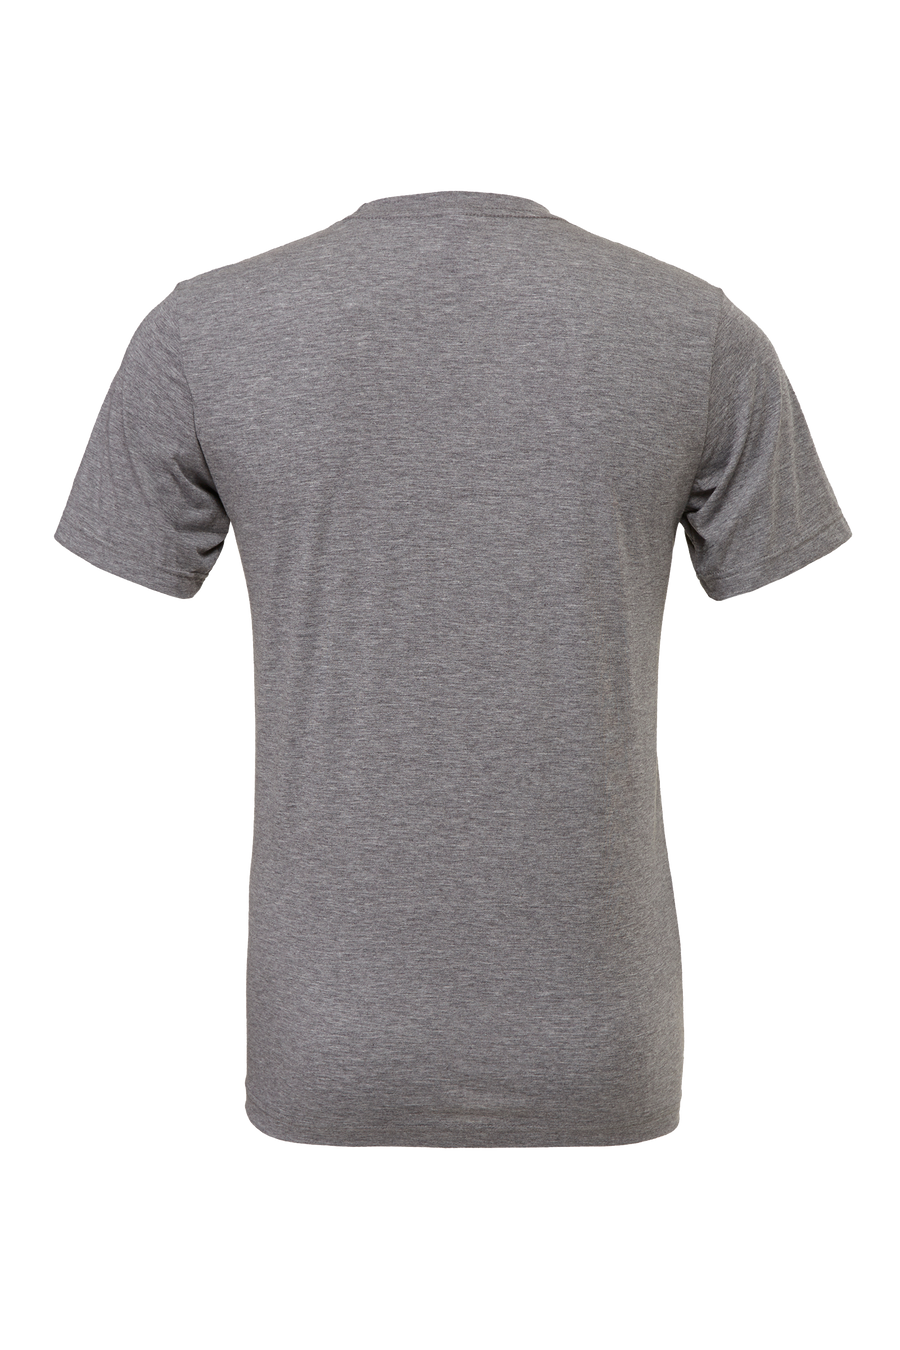 Wonder Goods t-shirt back view in heather gray.